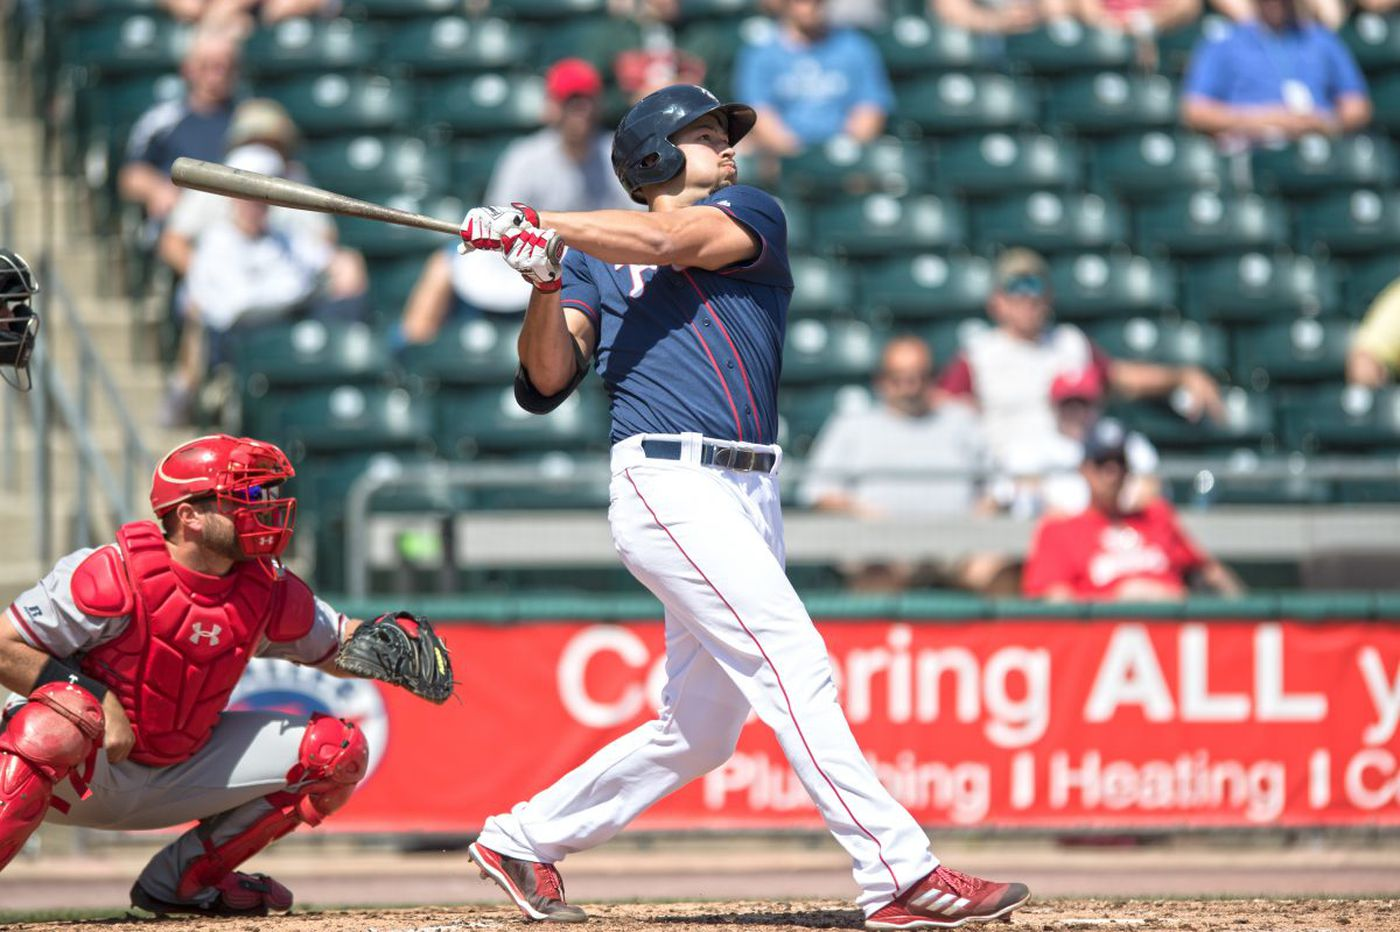 Dylan Cozens hit three home runs in triple-A Lehigh Valley on Wednesday